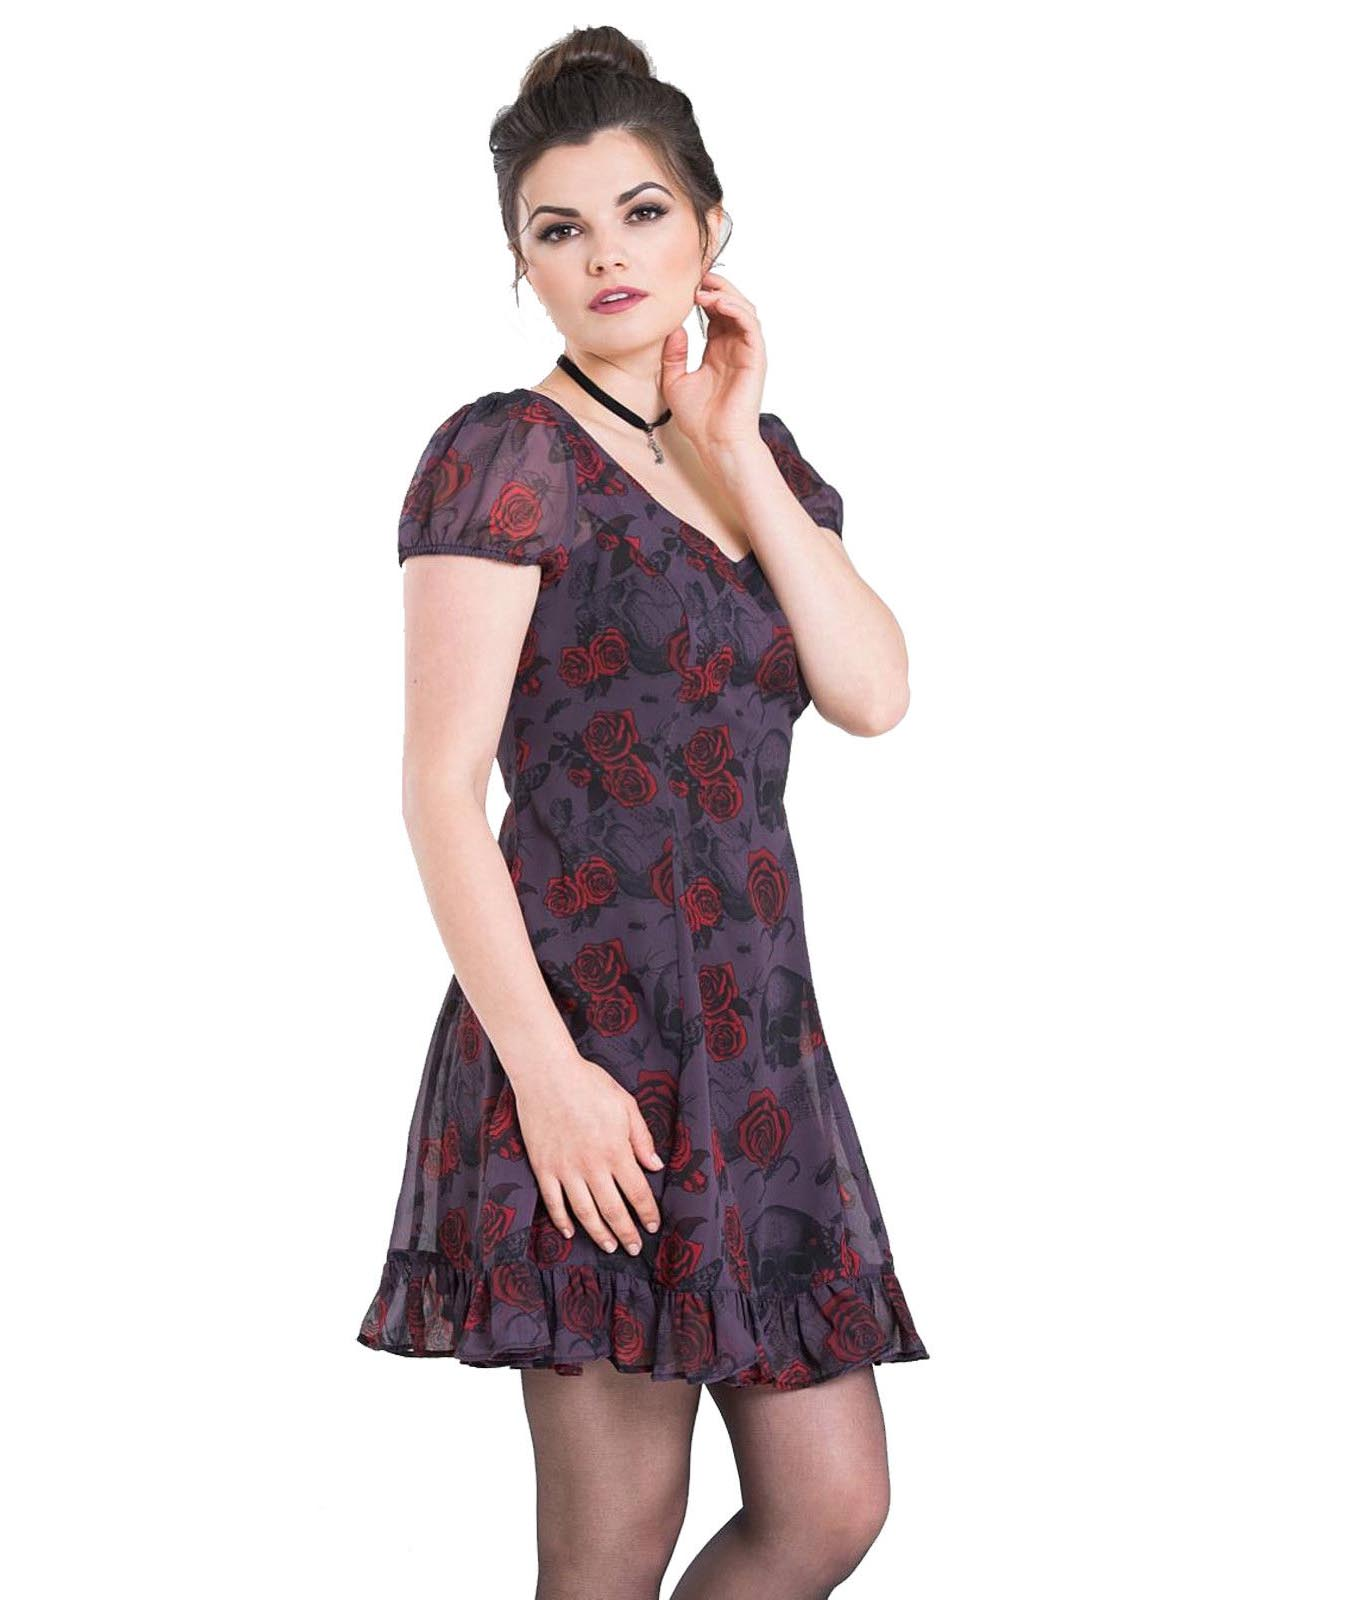 Hell-Bunny-Goth-Floaty-Mini-Dress-BUGS-amp-ROSES-Skulls-Butterfly-Purple-All-Sizes thumbnail 21